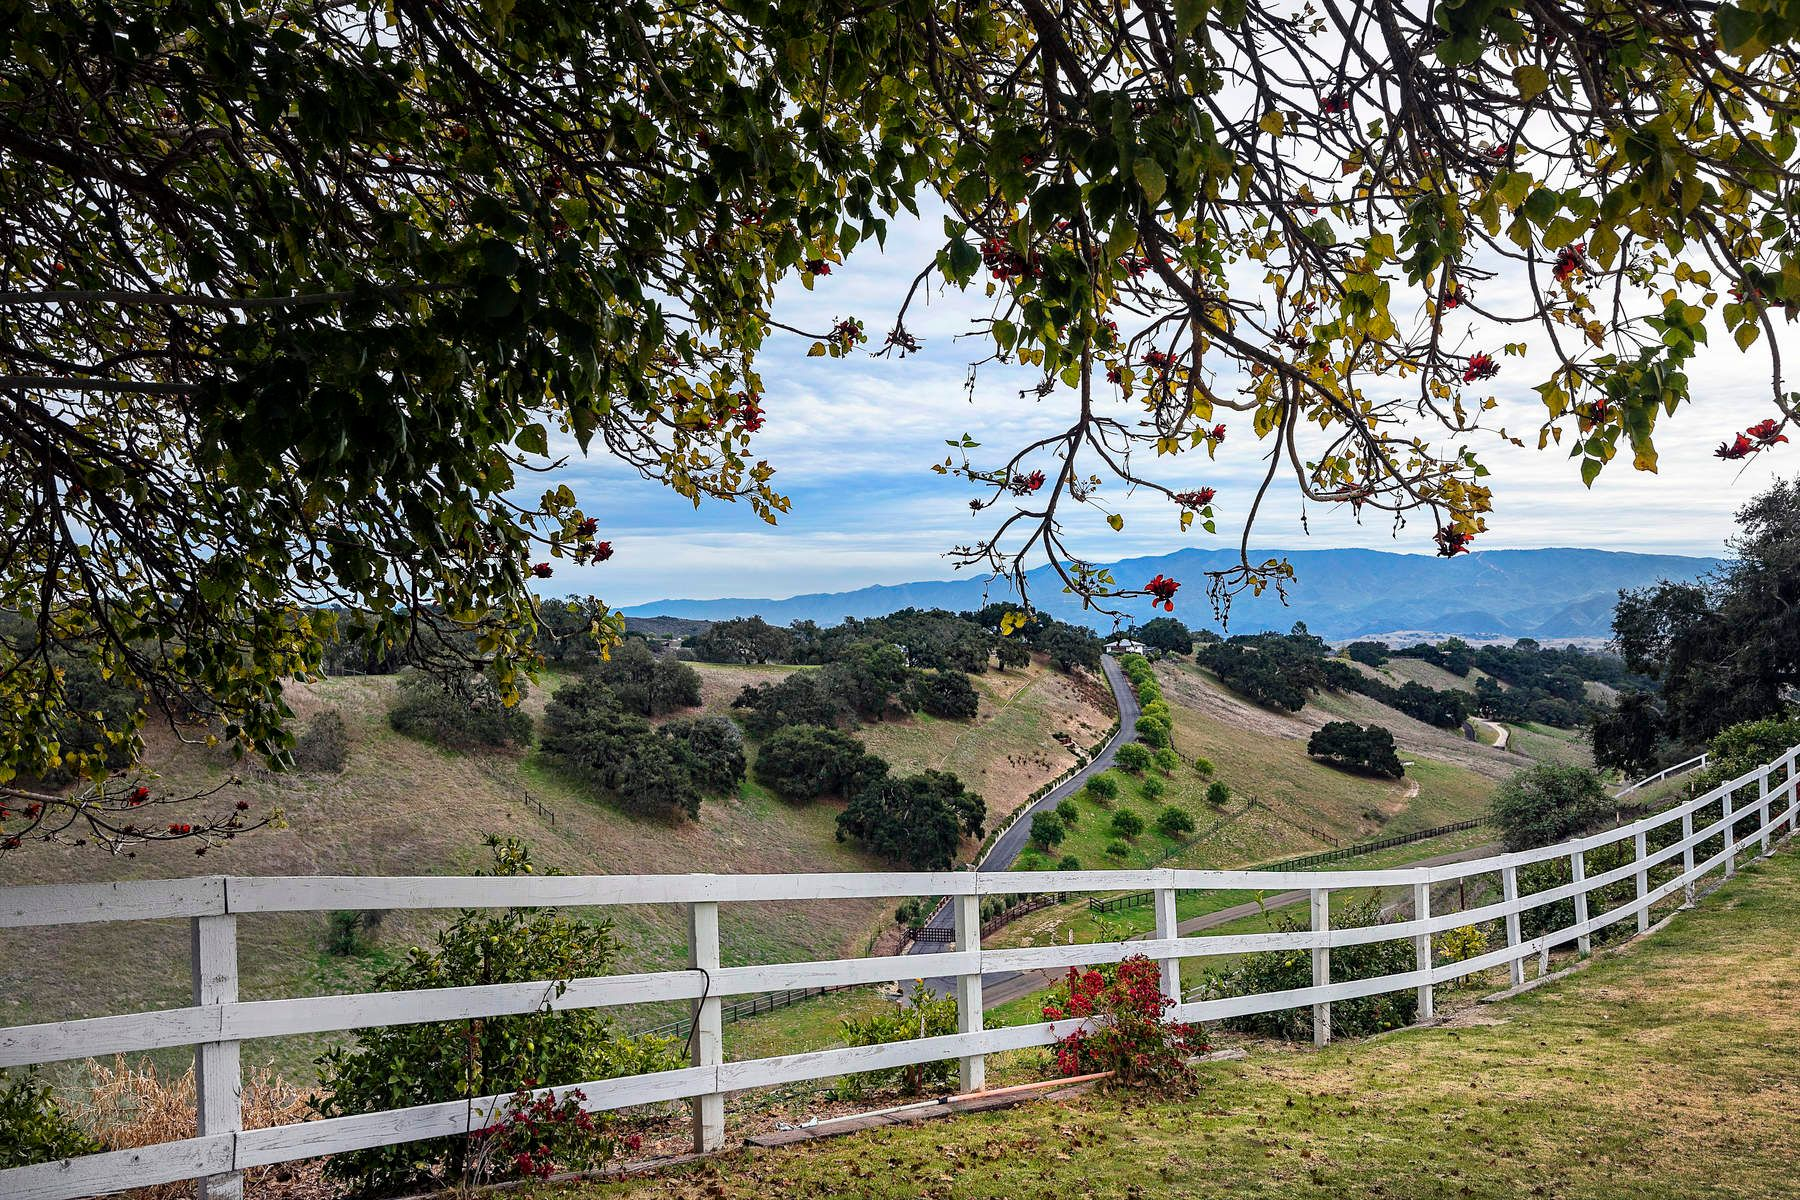 Single Family Home for Sale at Big Views, Big Bones, Big Opportunity 3671 Live Oak Road, Santa Ynez, California, 93460 United States